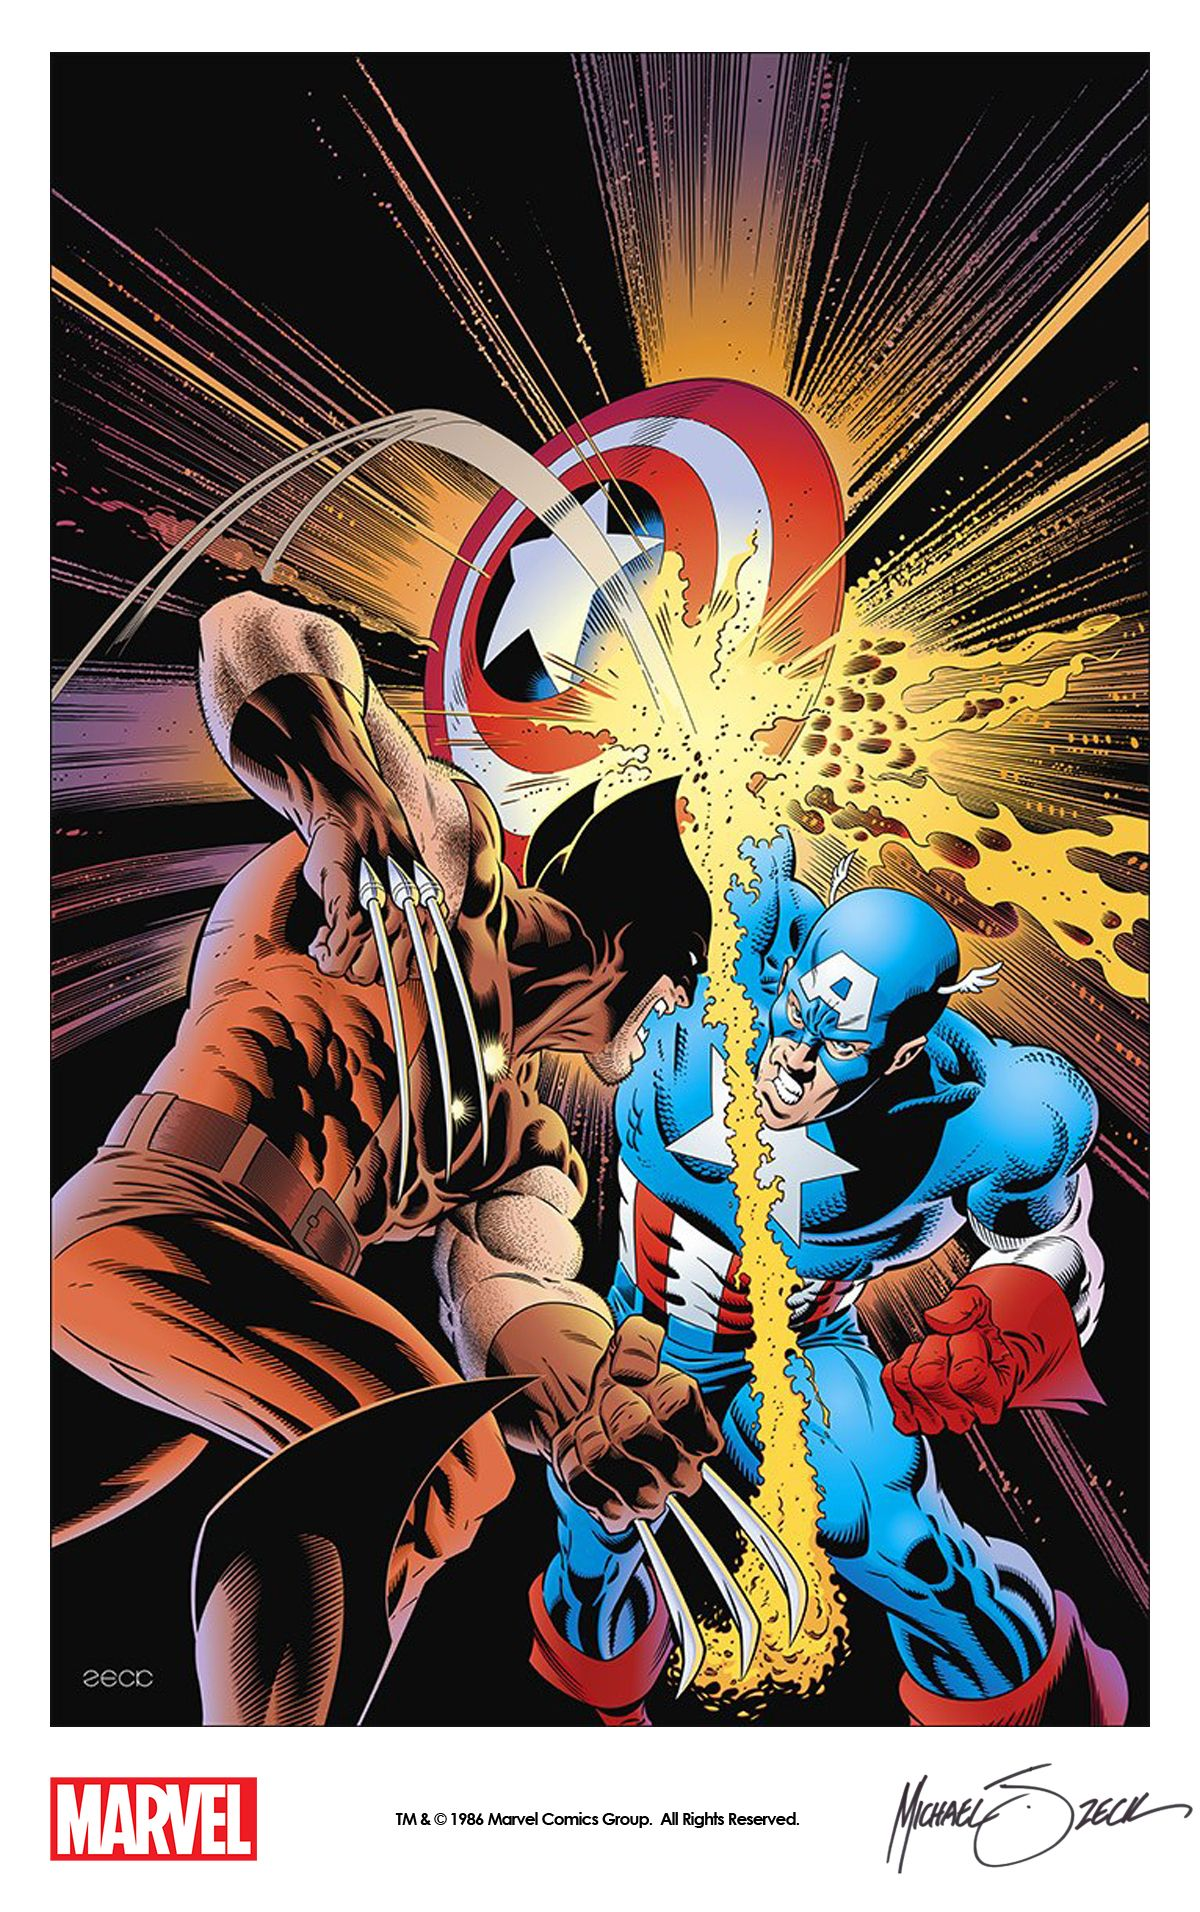 Wolverine Vs Captain America By Mike Zeck From The Iconic Cover Of Captain America Annual 8 1986 Wolverine Vs Captain America Wolverine Art Marvel Art